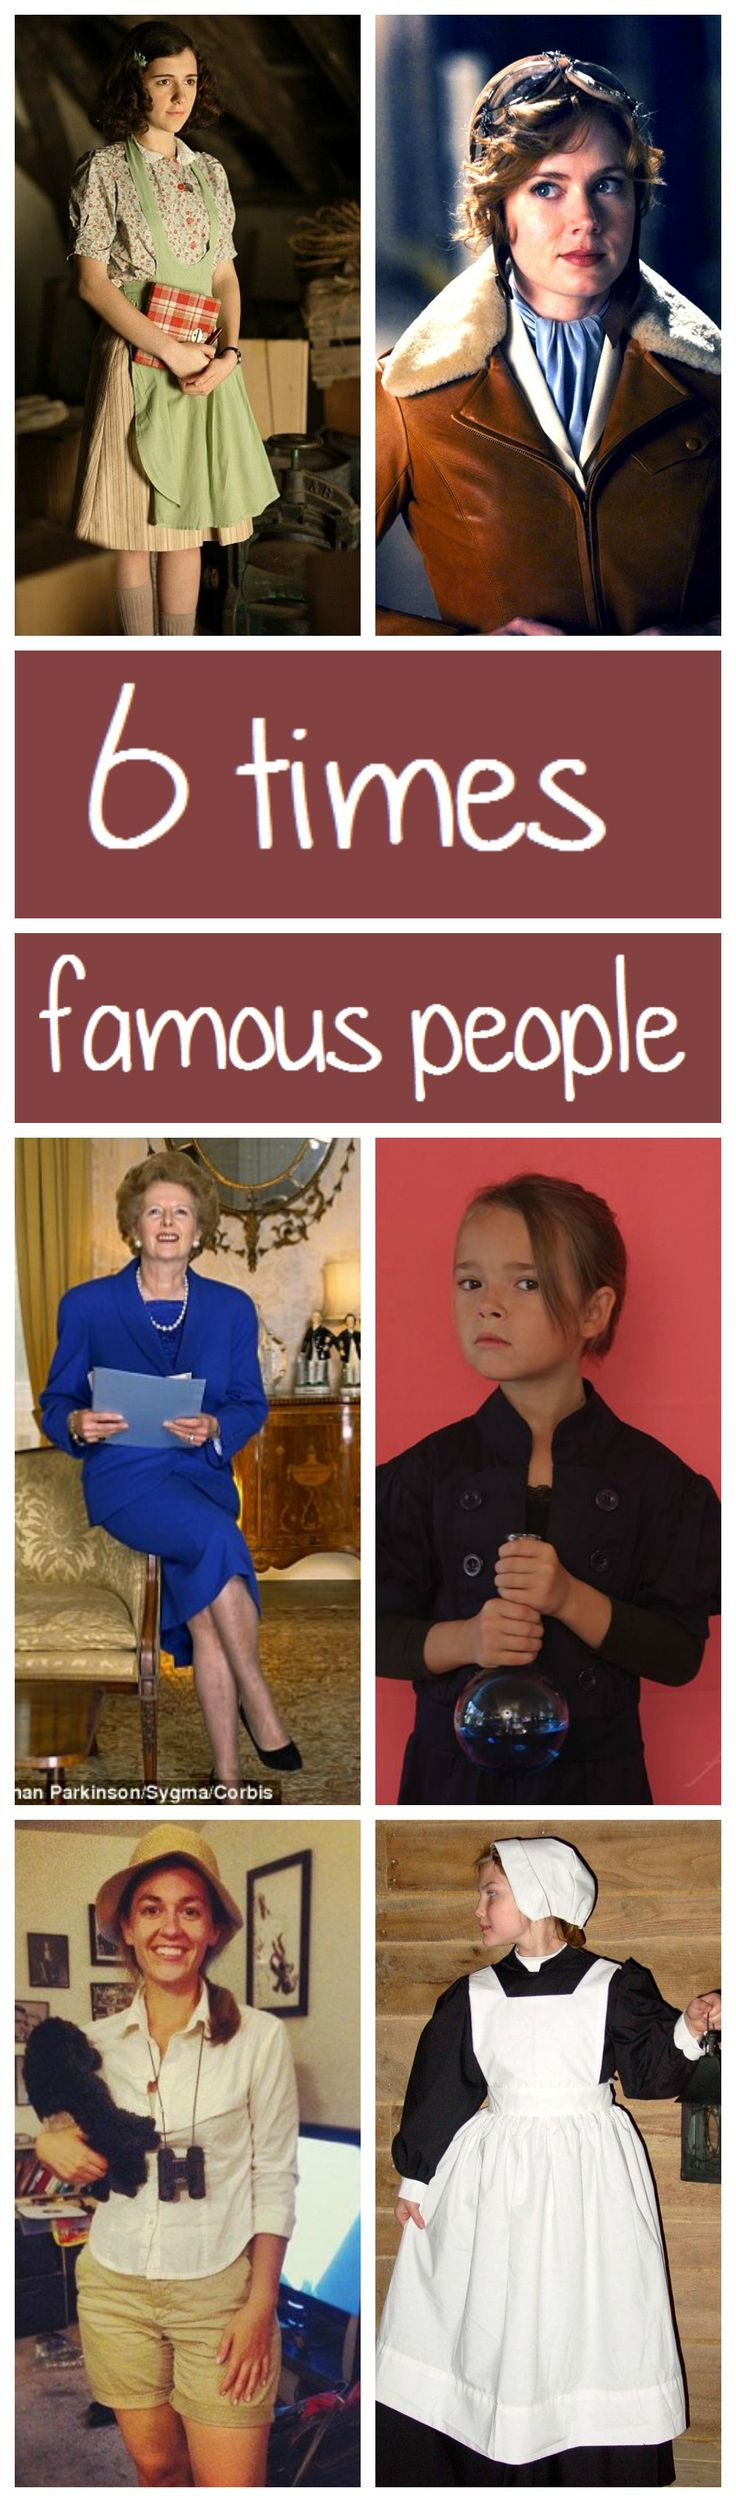 Costume ideas inspired by famous people like: Anne Frank, Emilia Earhart, Margareth Thatcher, Madam Curie, Florance Nightingale, Jane Goodall